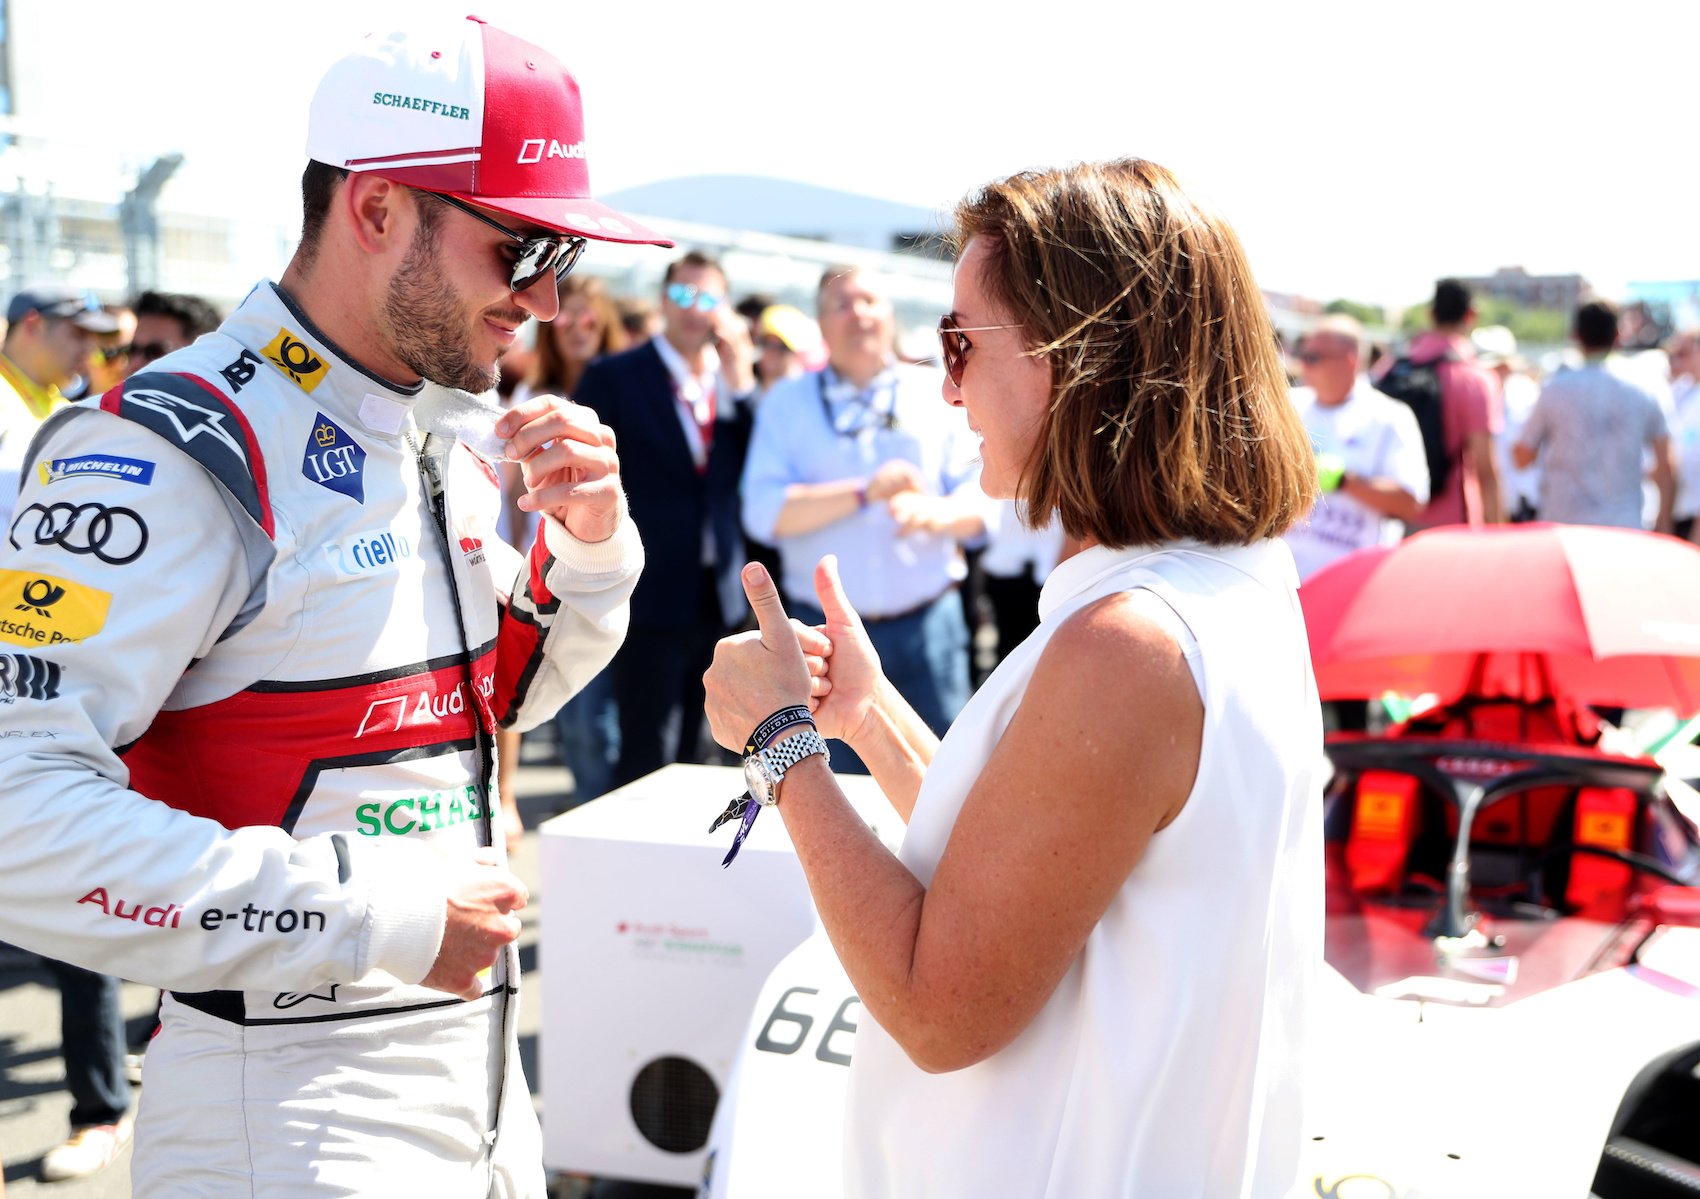 Formel E als Emotionalisierungsmotor: Pilot Daniel Abt und Hildegard Wortmann am Rande des E-Prix in New York City 2019. (AUDI)